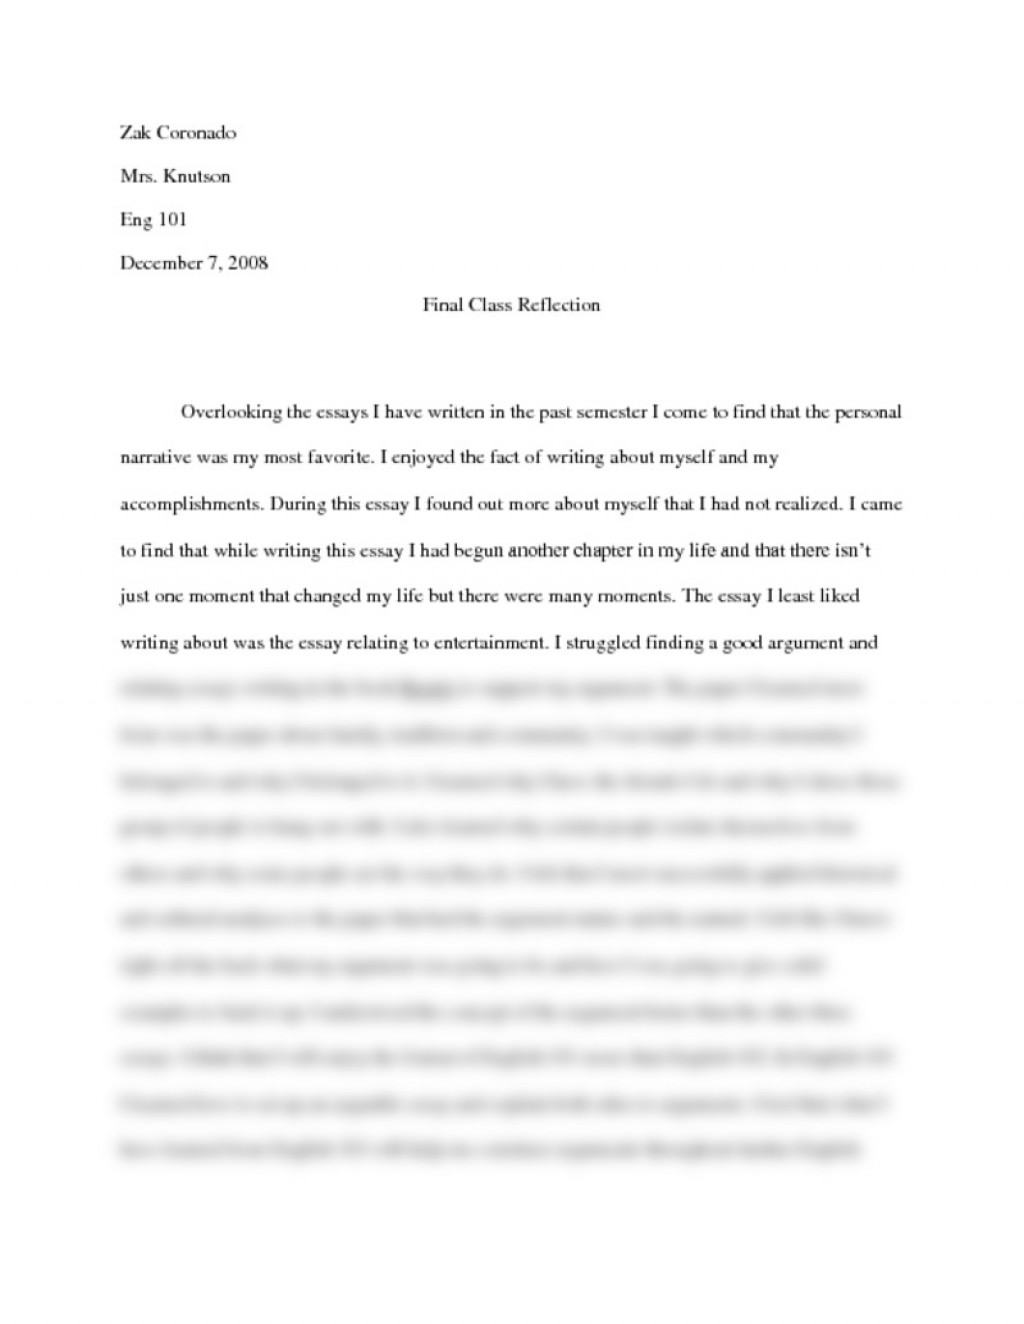 007 Preview0 Essay Example English Rare 101 Essays Reading And Writing Topics Large